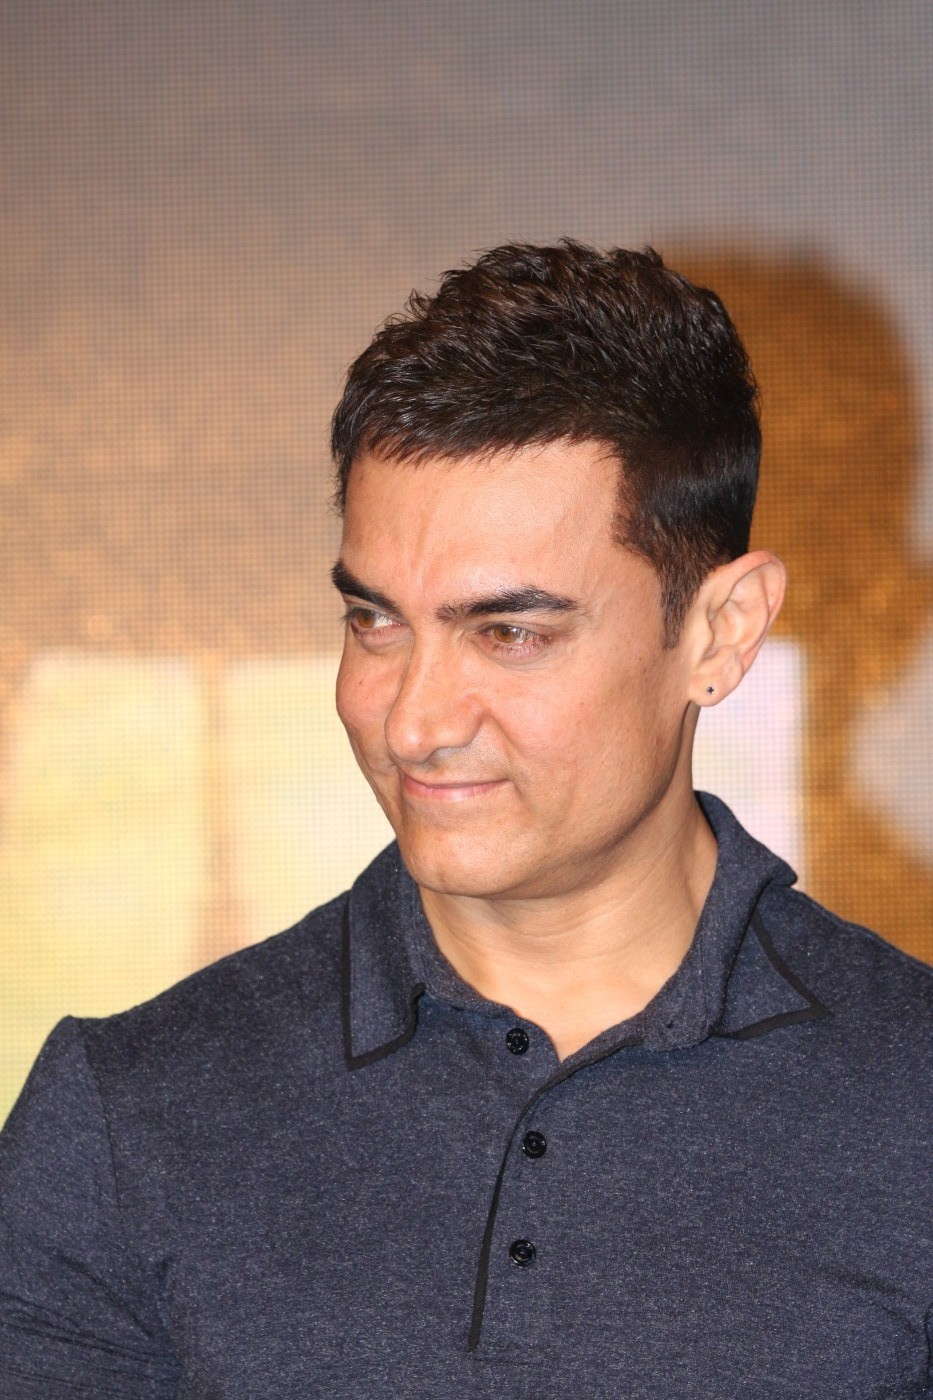 Aamir Khan Quotes. This most influential people's quotes bucket present quotes by influential people. Aamir Khan was listed in the Time's 100 most influential people of 2013. Aamir Khan, the Indian Actor was included in the Pioneers category of the Time's 100 most influencing people's list.